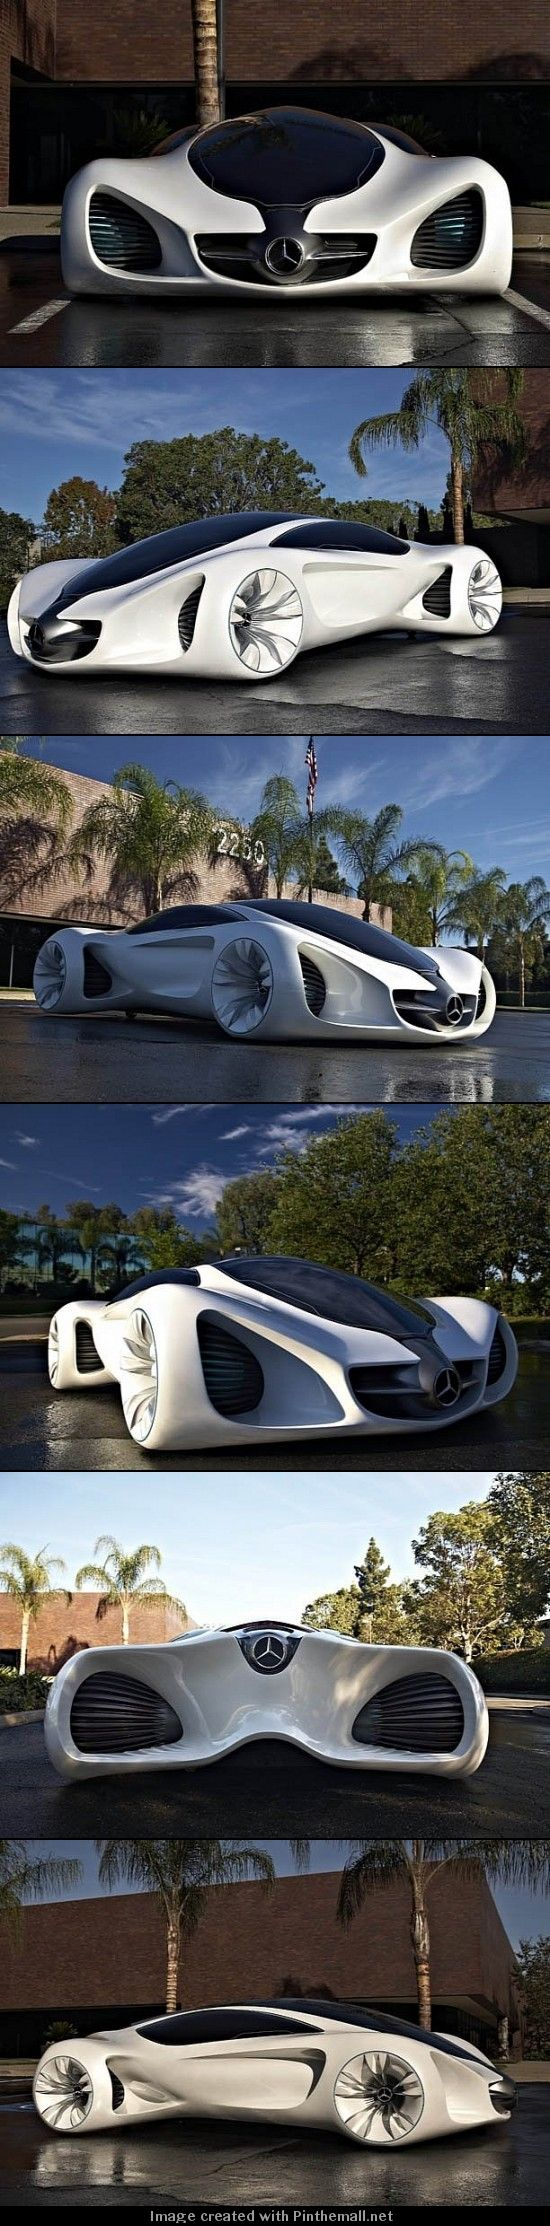 Lente en pasen motorcycle review and galleries - Mercedes Biome Concept